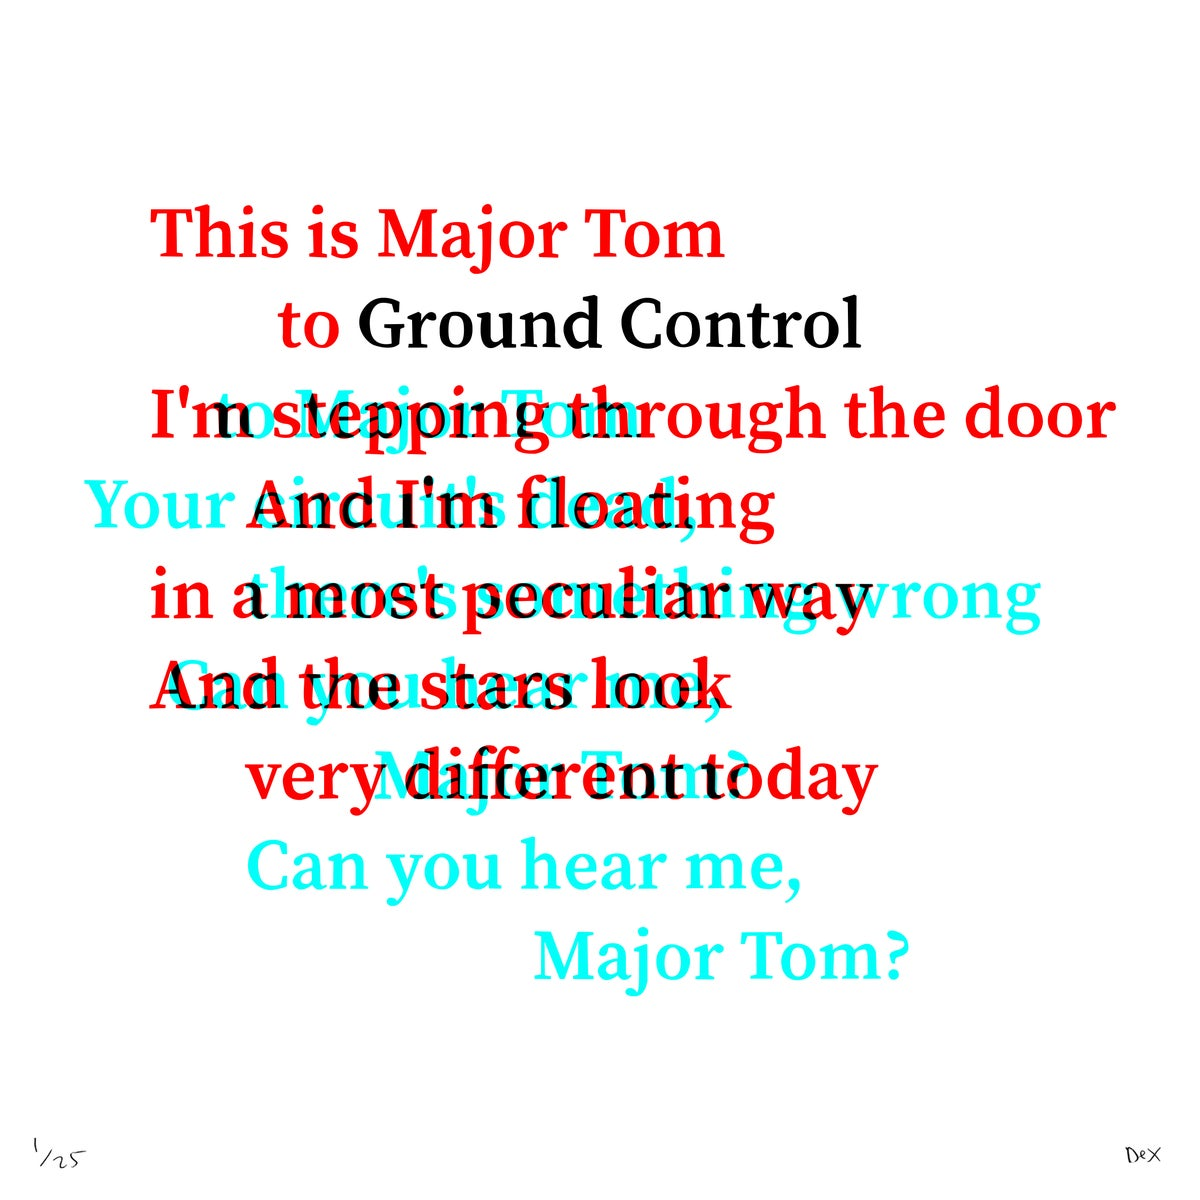 Image of Major Tom